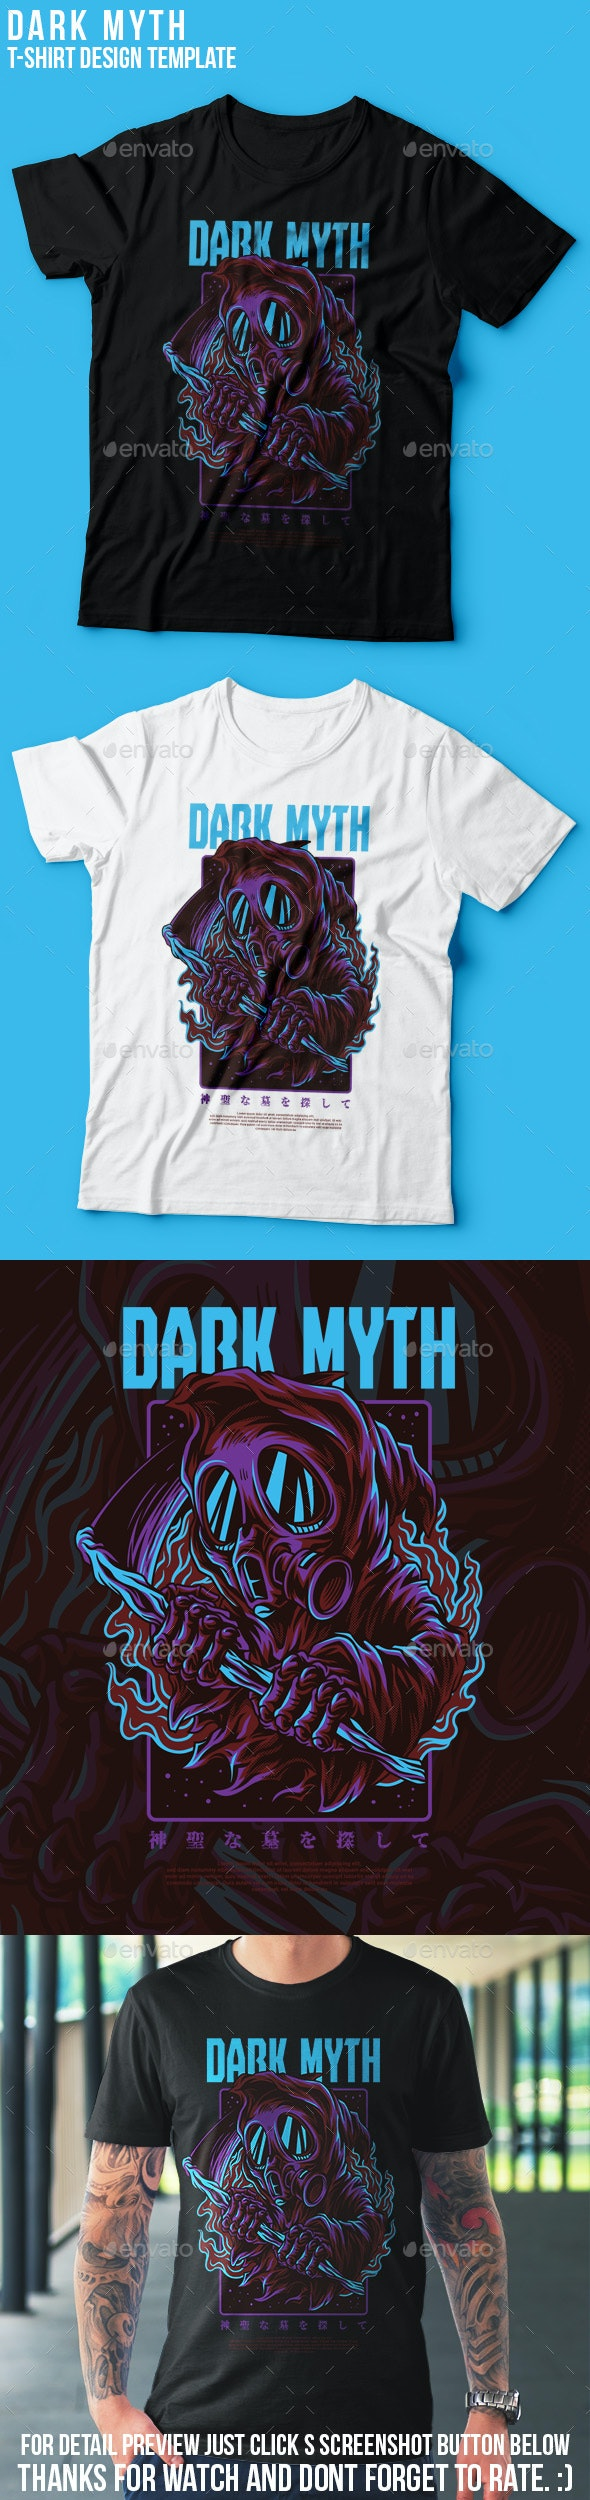 Dark Myth T-Shirt Design - Events T-Shirts